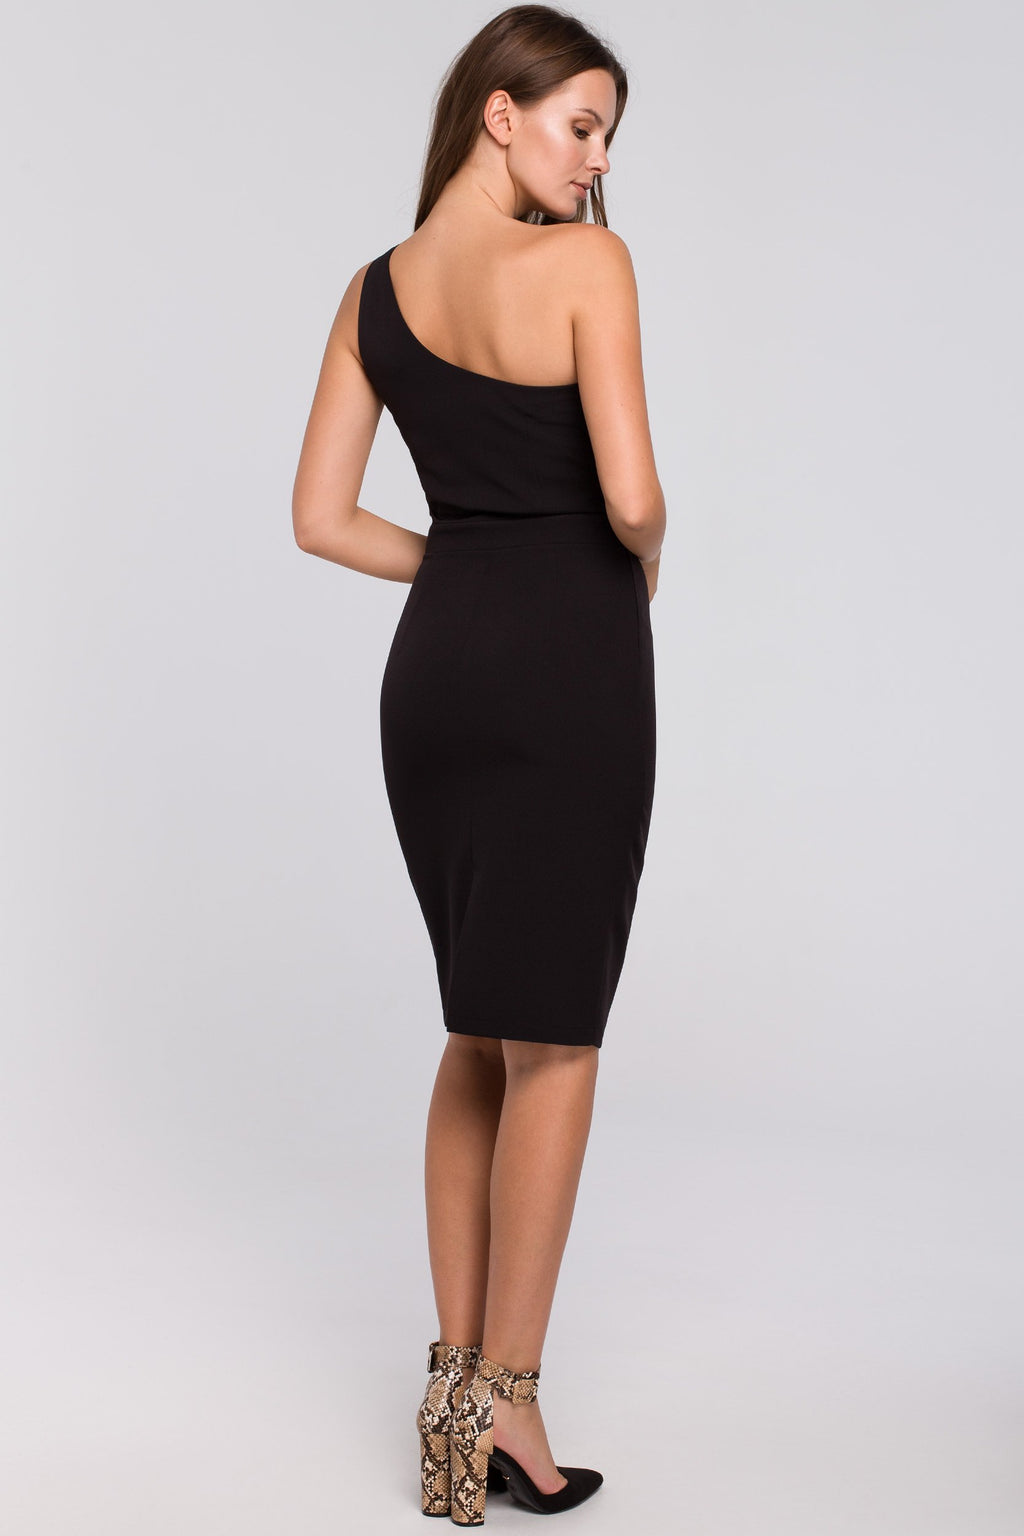 Black Fitted One Shoulder Dress - So Chic Boutique